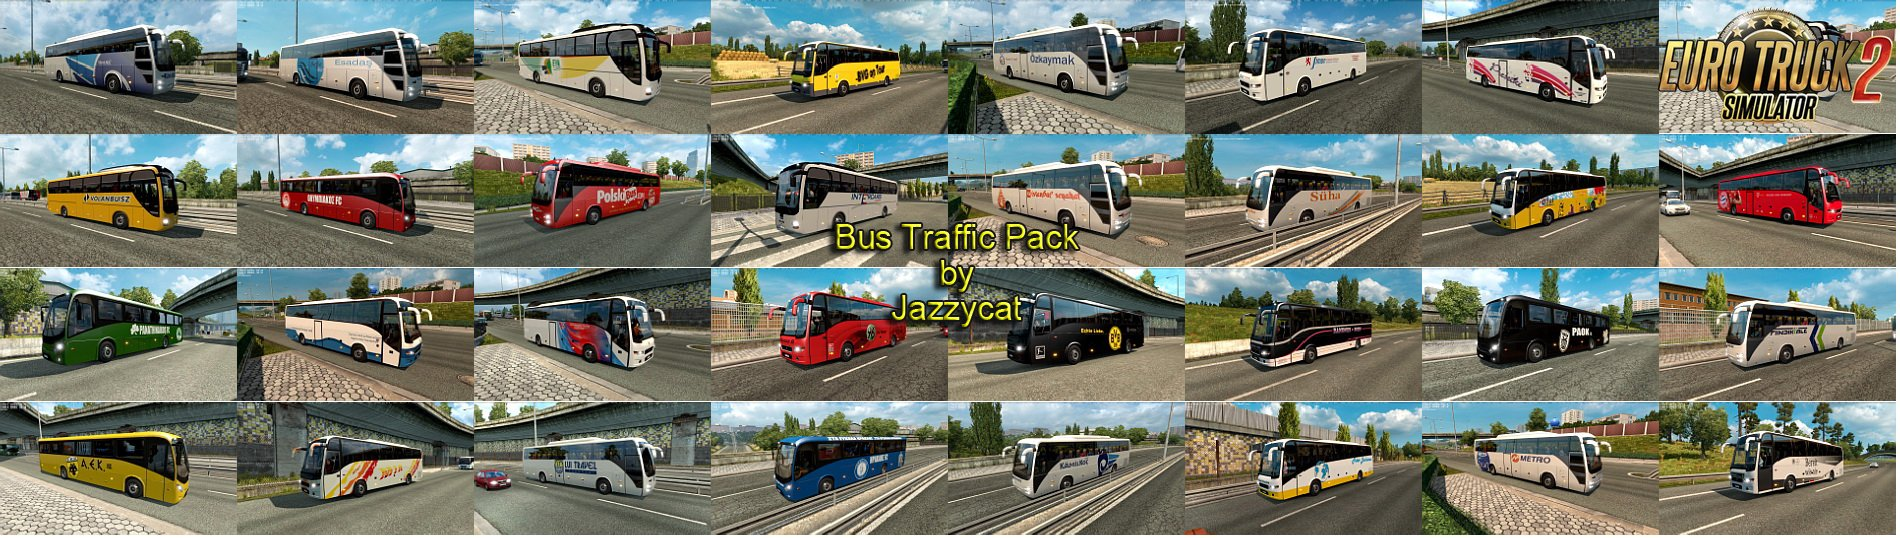 Bus Traffic Pack v1.5 by Jazzycat [1.26.x]